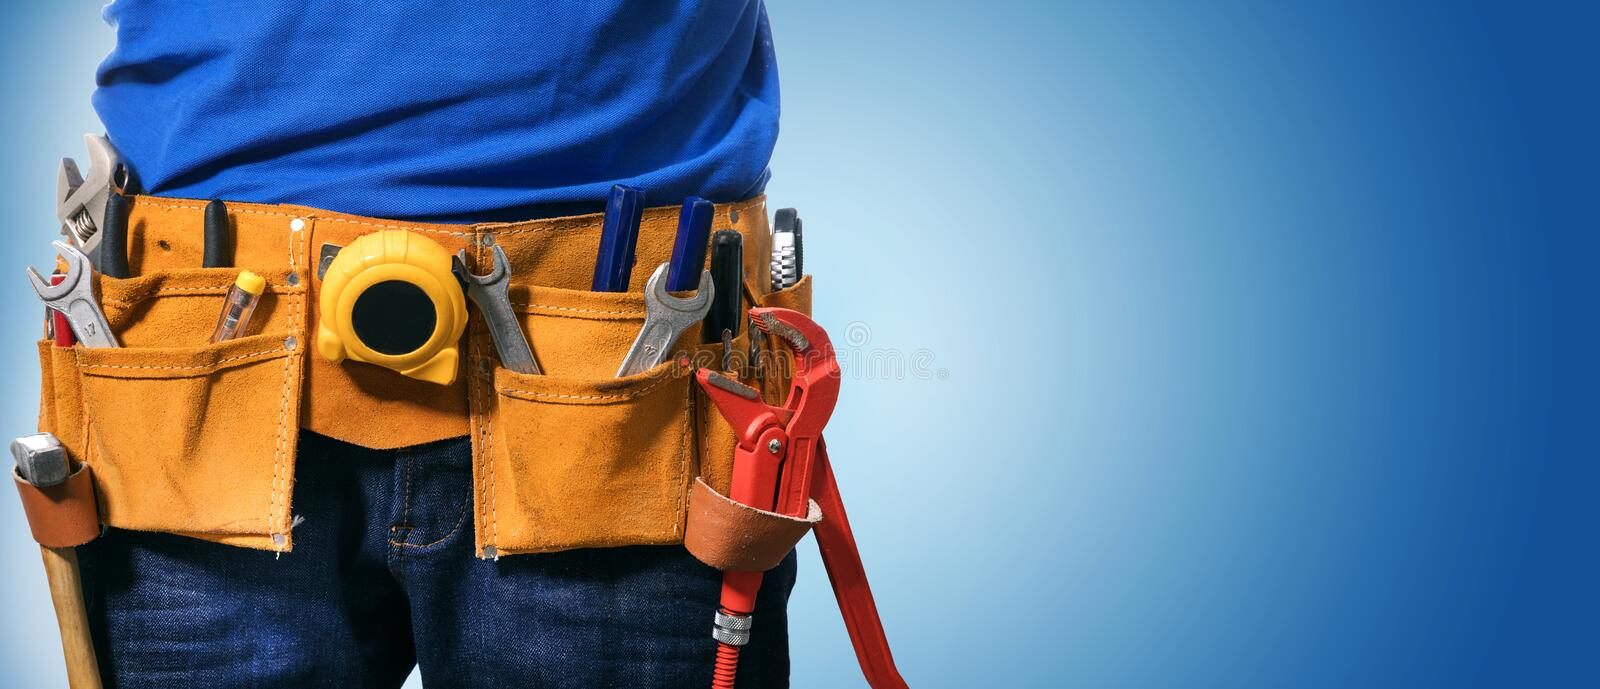 handyman tool belt on blue background with copy space stock photo